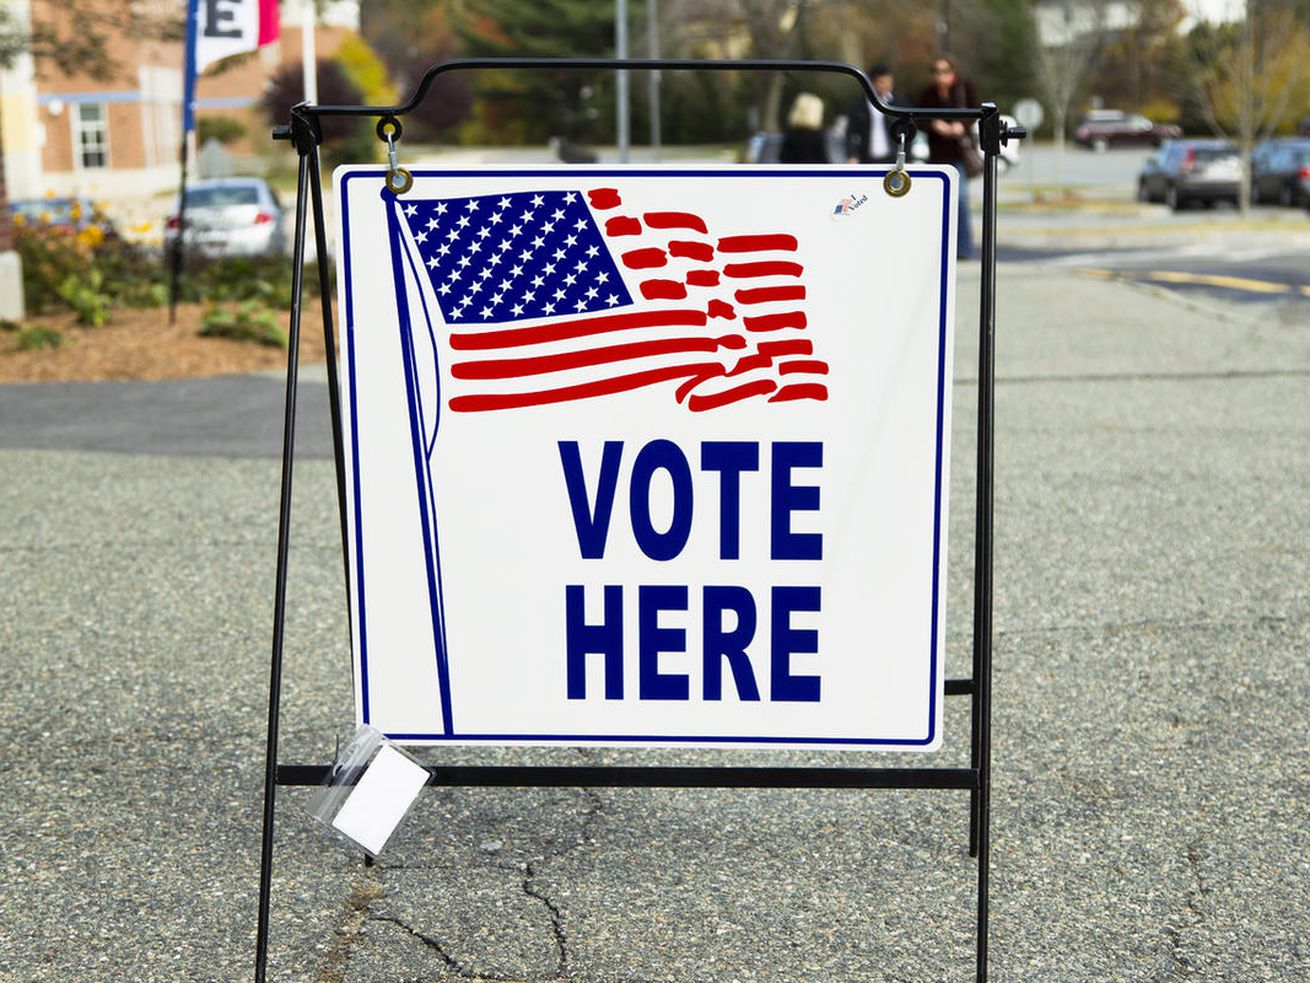 A sign shows an election polling place during a United States election.